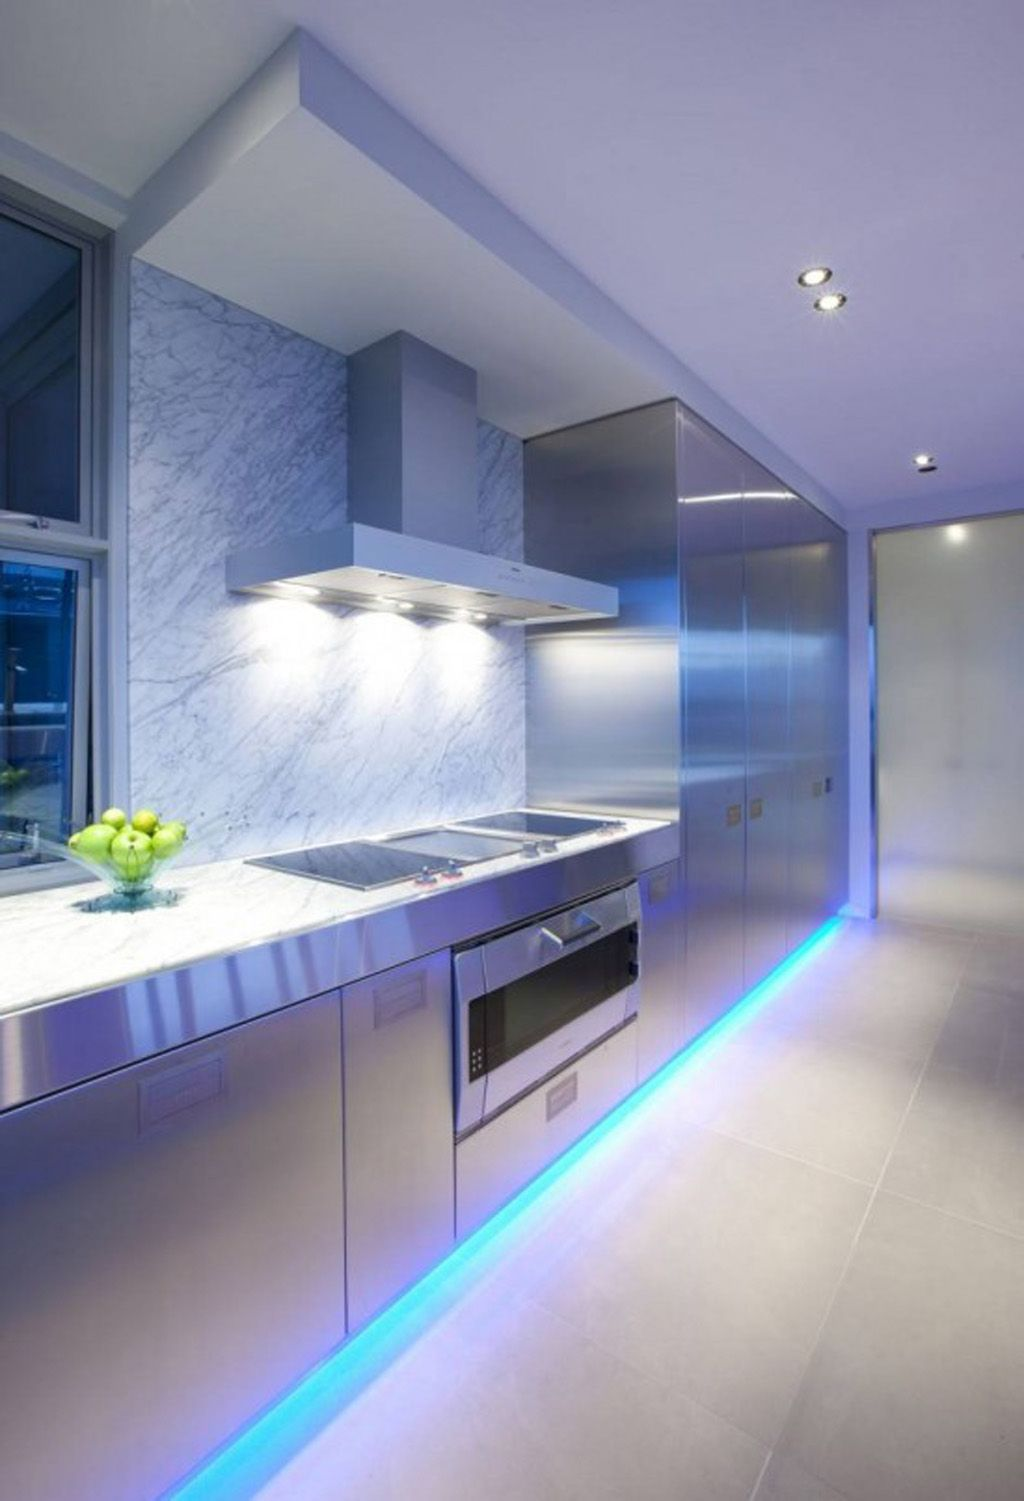 led lighting fixtures modern kitchen interior decor irooniecom - Led Kitchen Light Fixtures